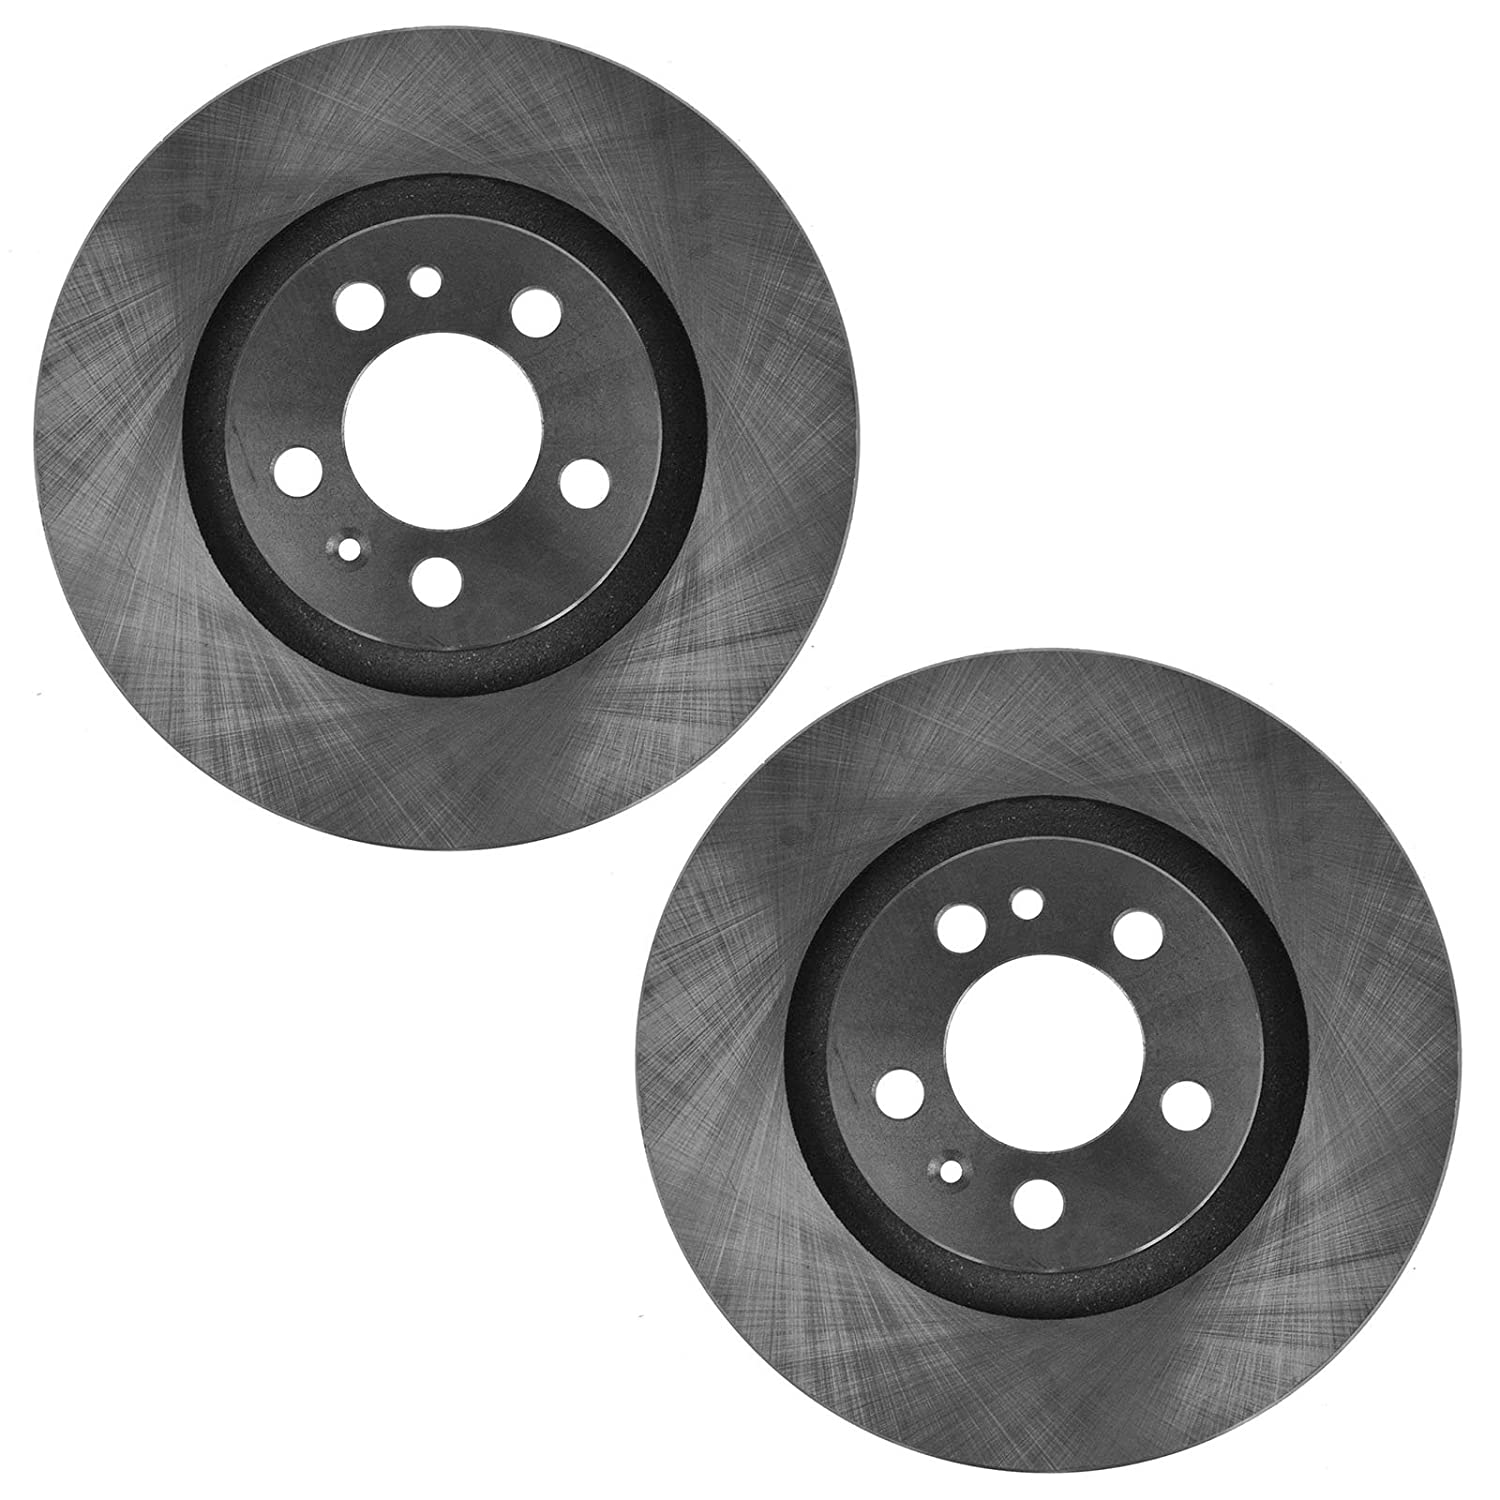 Vented Front Disc Brake Rotor Pair Set for VW Beetle Jetta